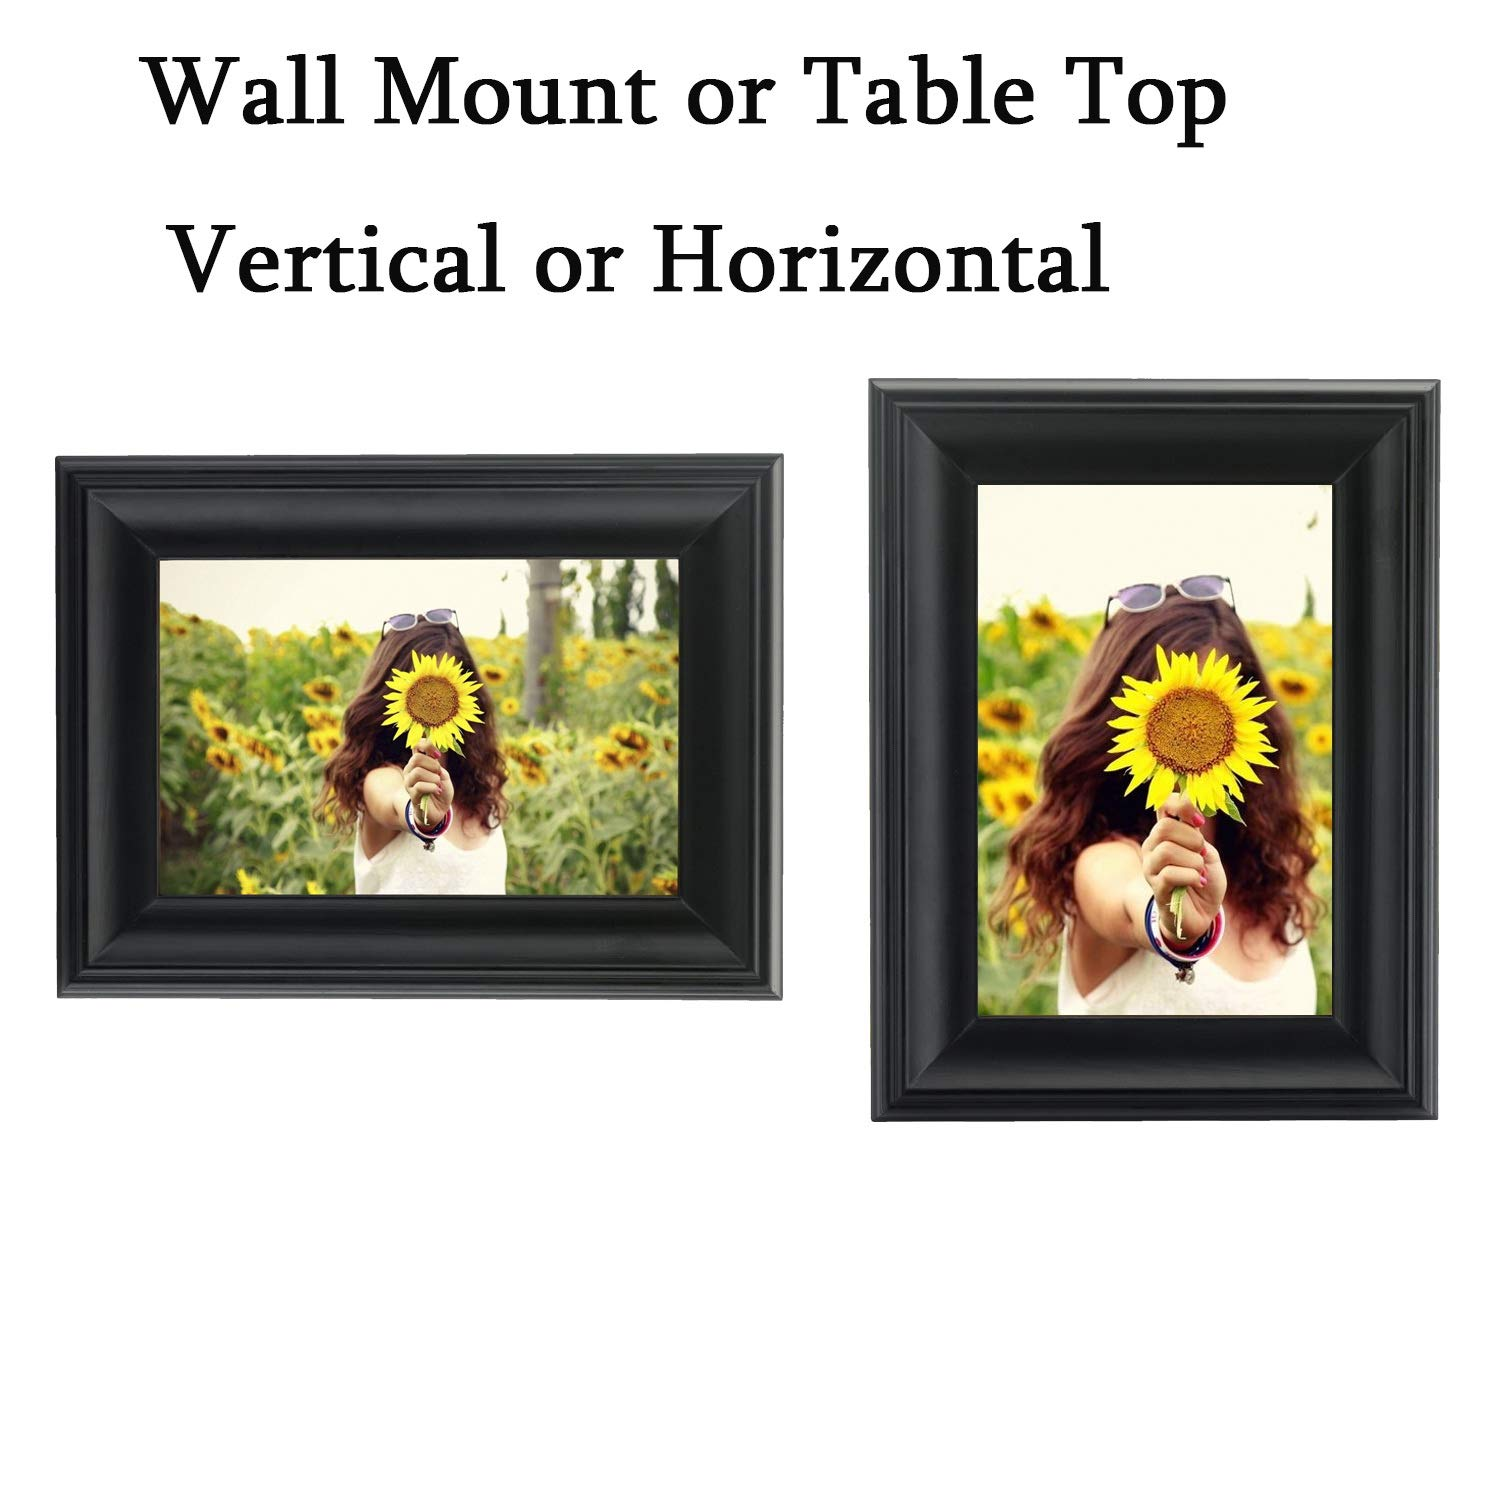 HOMESTY 4x6 Picture Frame Black,Wooden Photo Frame for Table Top Display and Wall mounting Photo Frame Decorative Art Prints /& Hanging Template